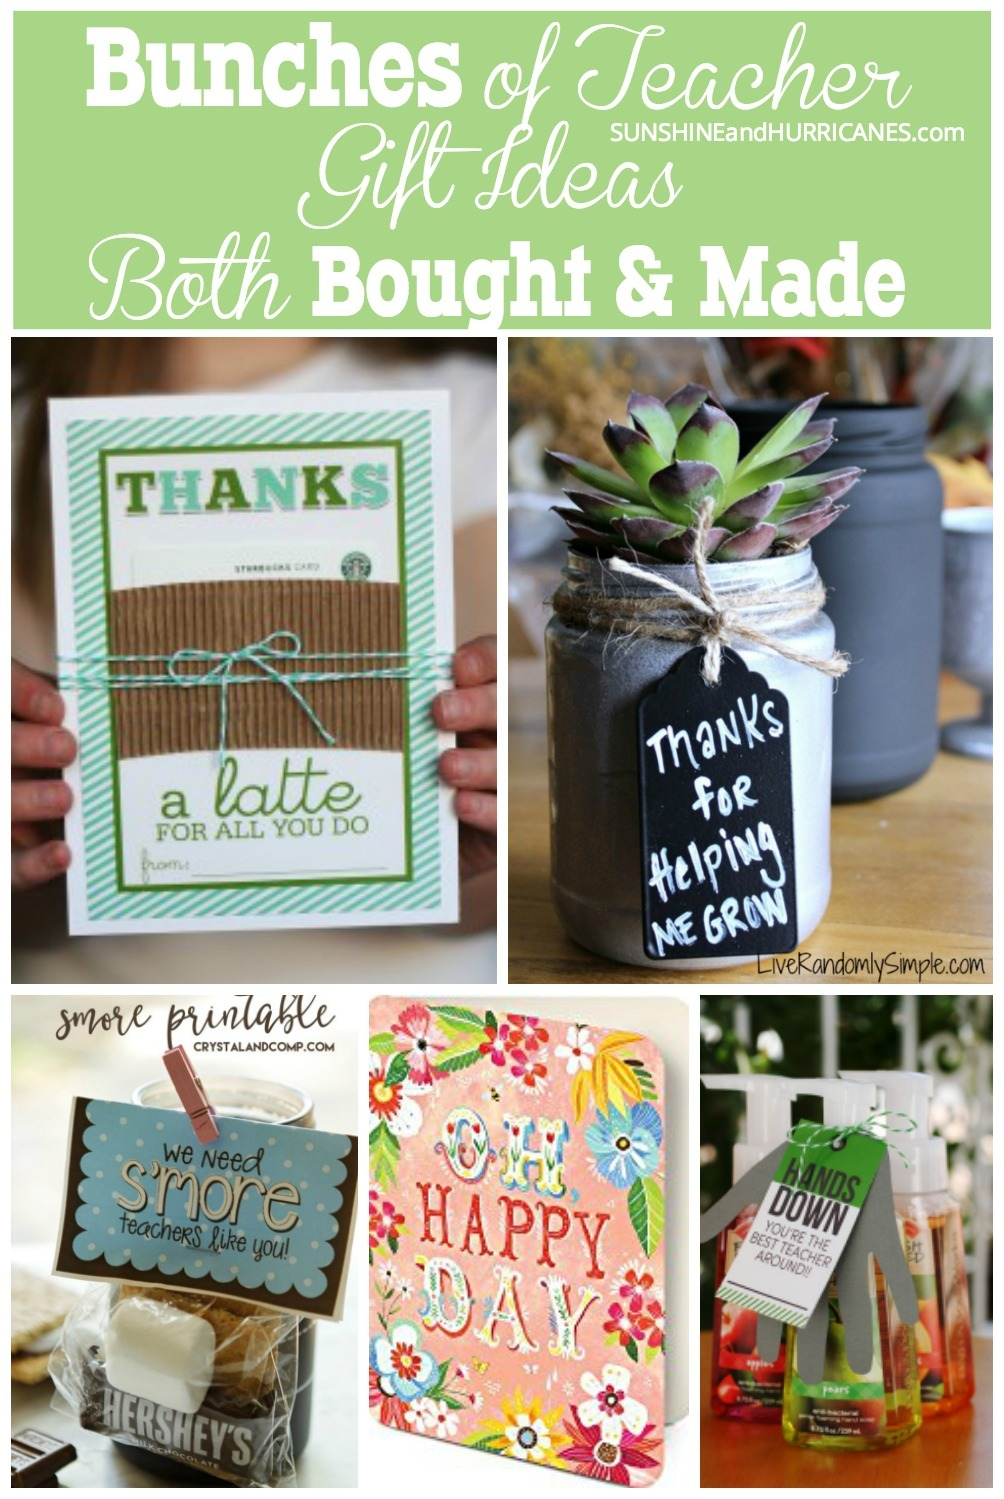 Not sure what to get your child's teacher as a teacher appreciation week gift or an end of year teacher gift? Here are ideas straight from a teacher that you can either buy or make, whichever suits your fancy.